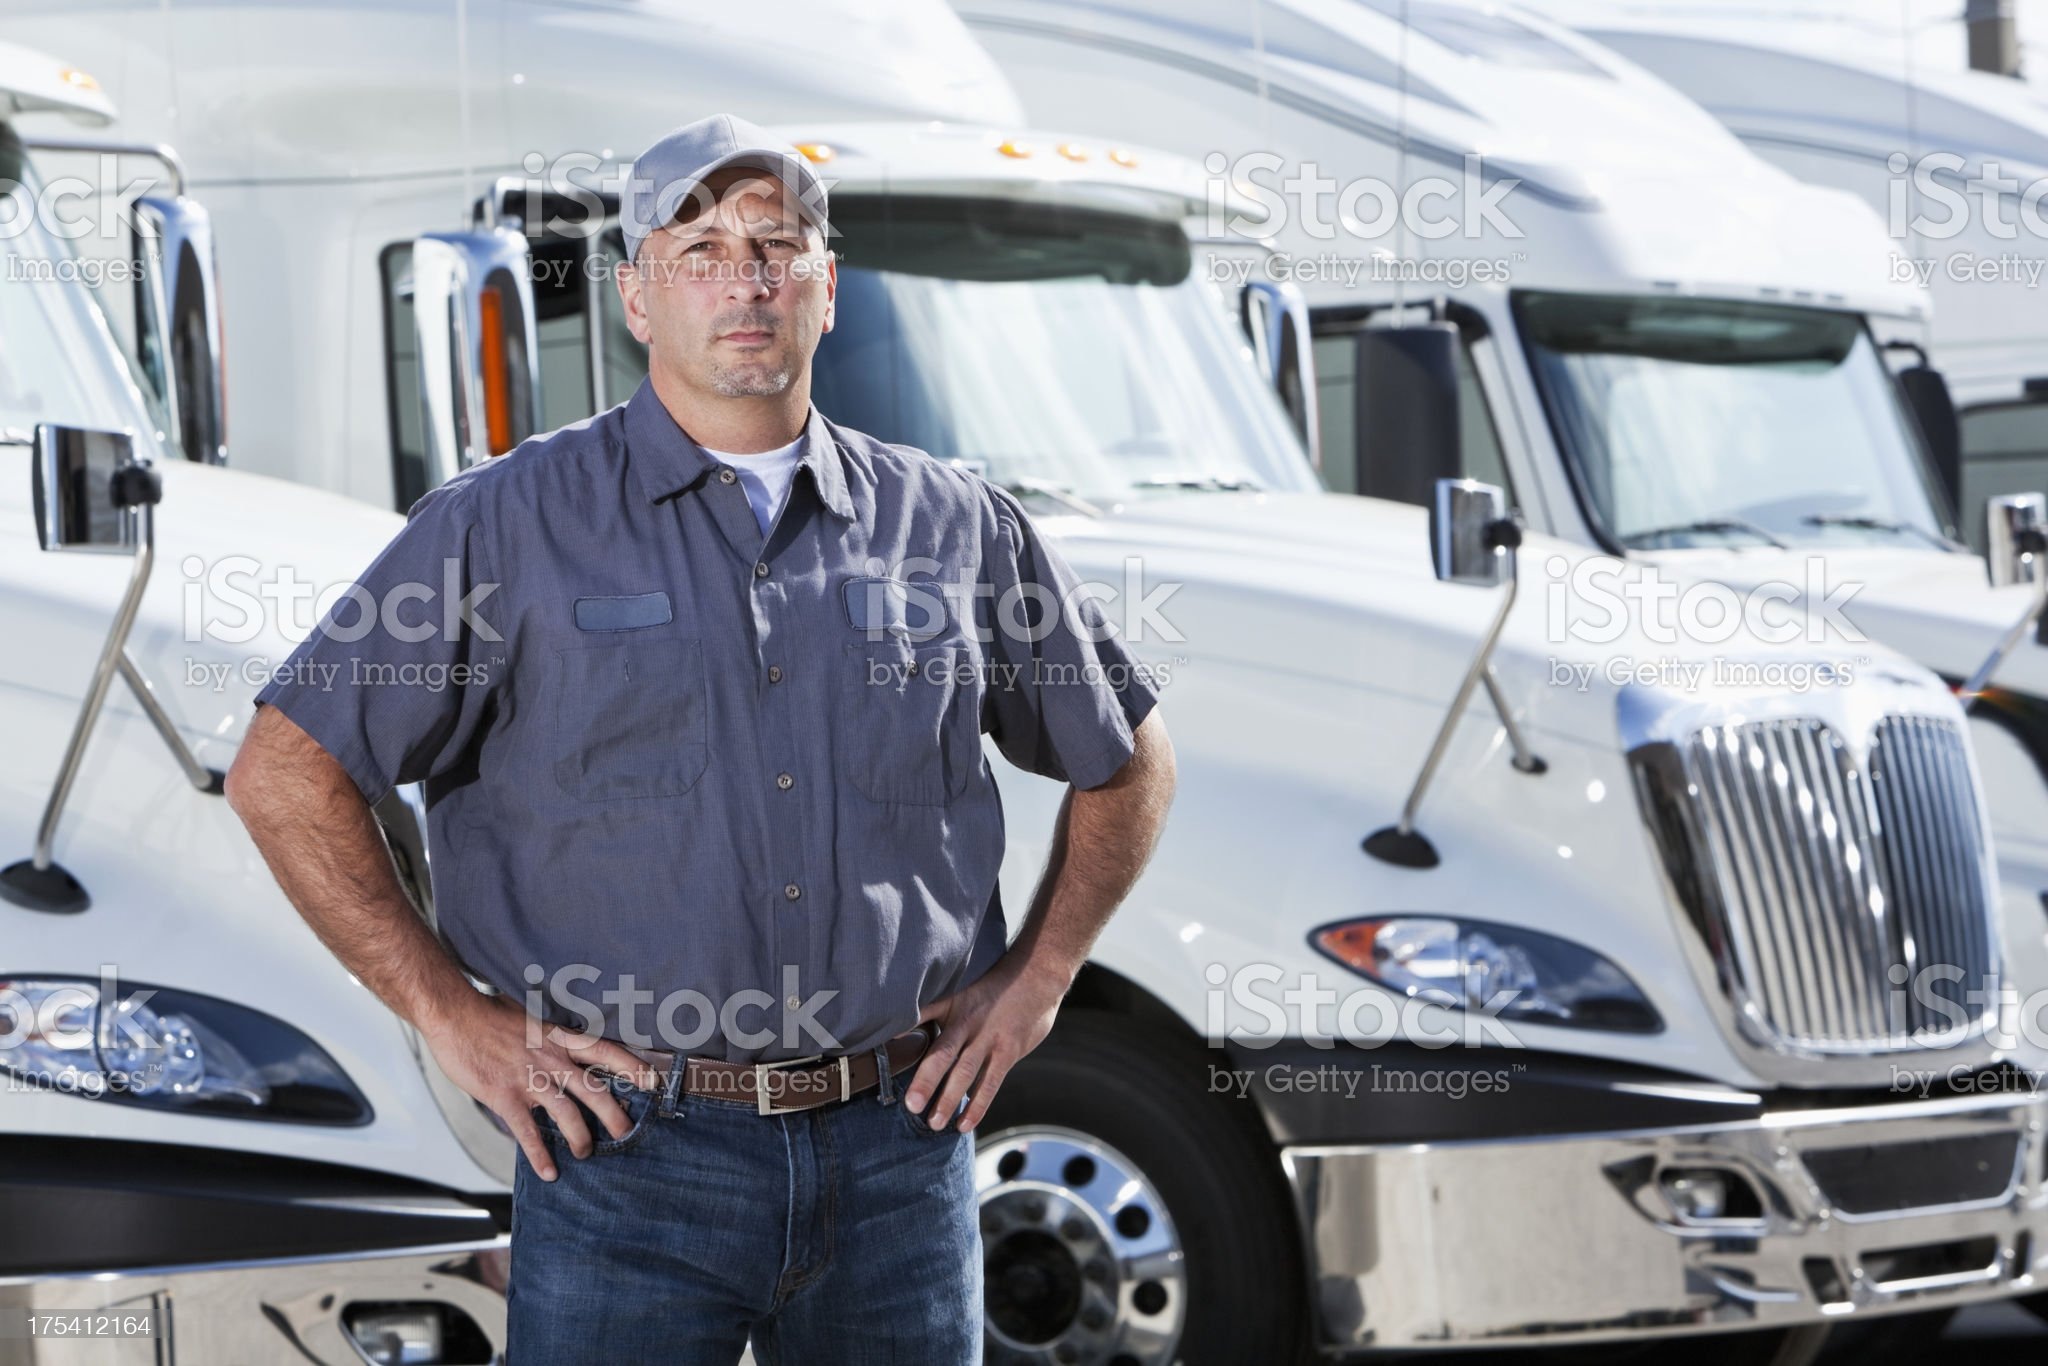 Truck driver standing in front of big rigs royalty-free stock photo